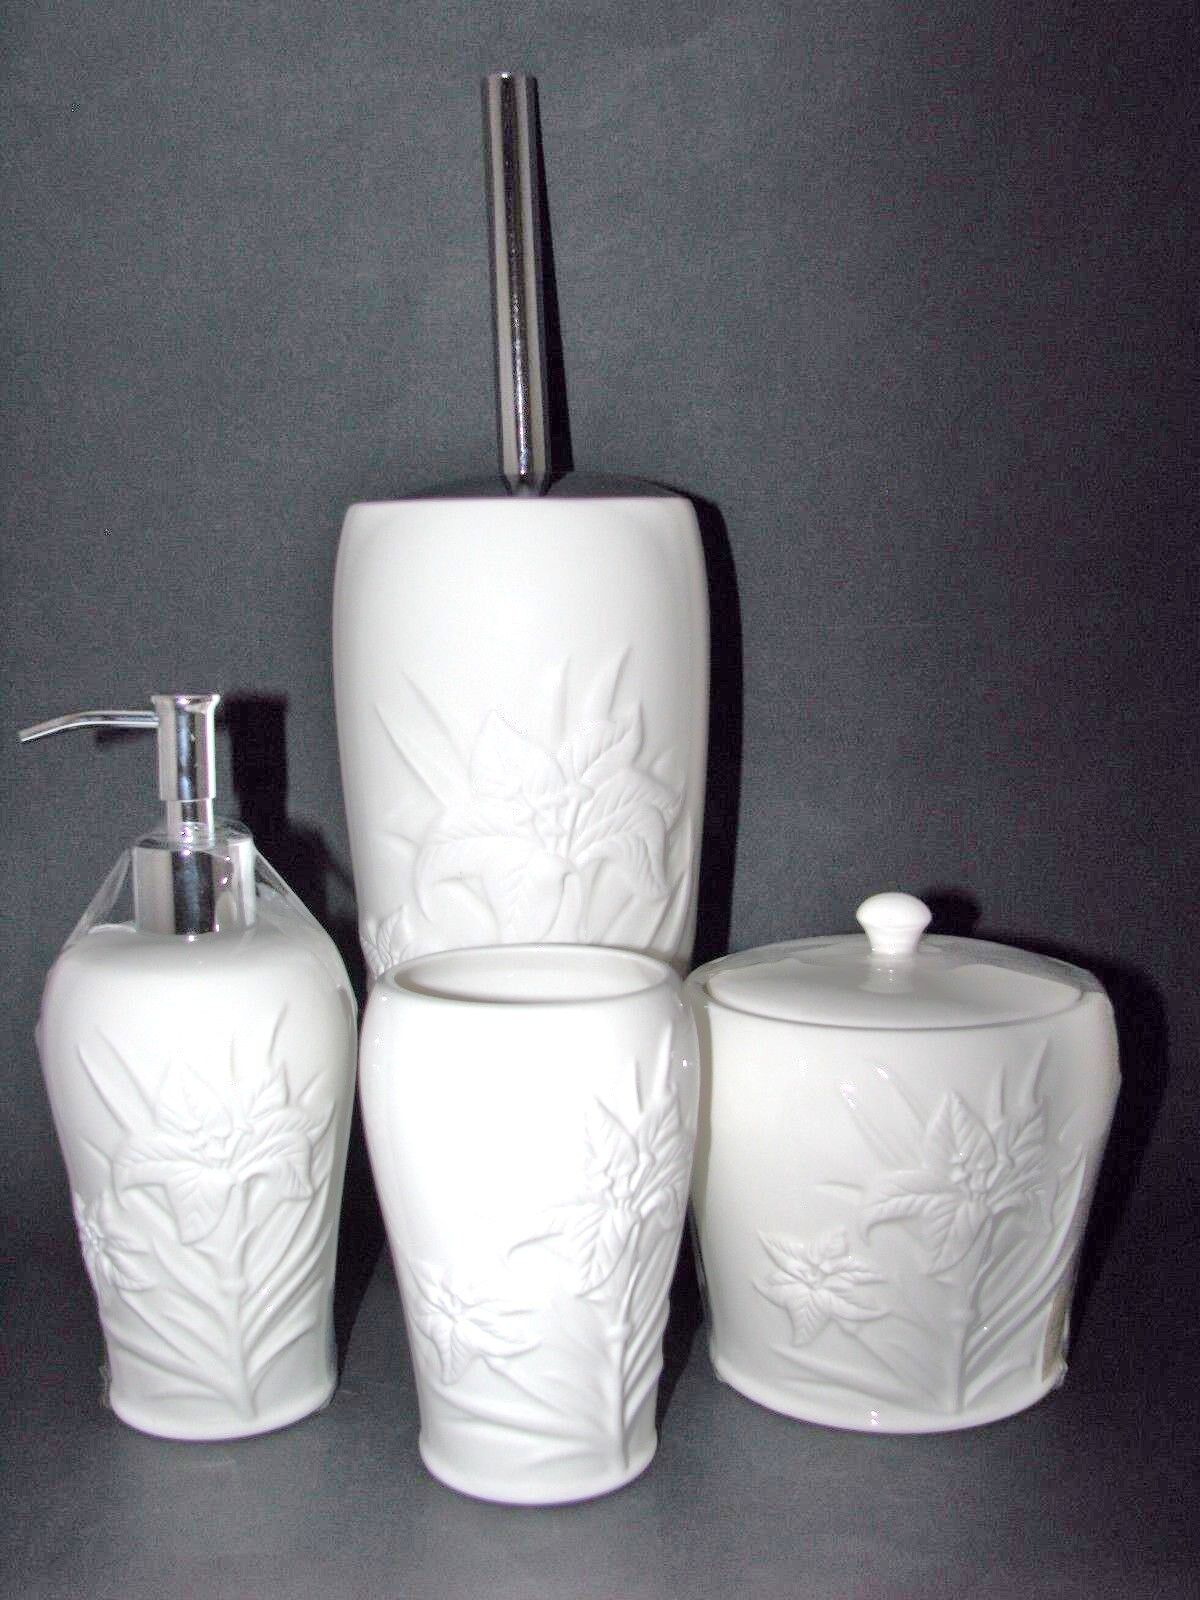 4 PC ARTISTIC Weiß POINSETTIA CERAMIC SOAP DISPENSER,TOILET BRUSH HOLDER+2 MORE